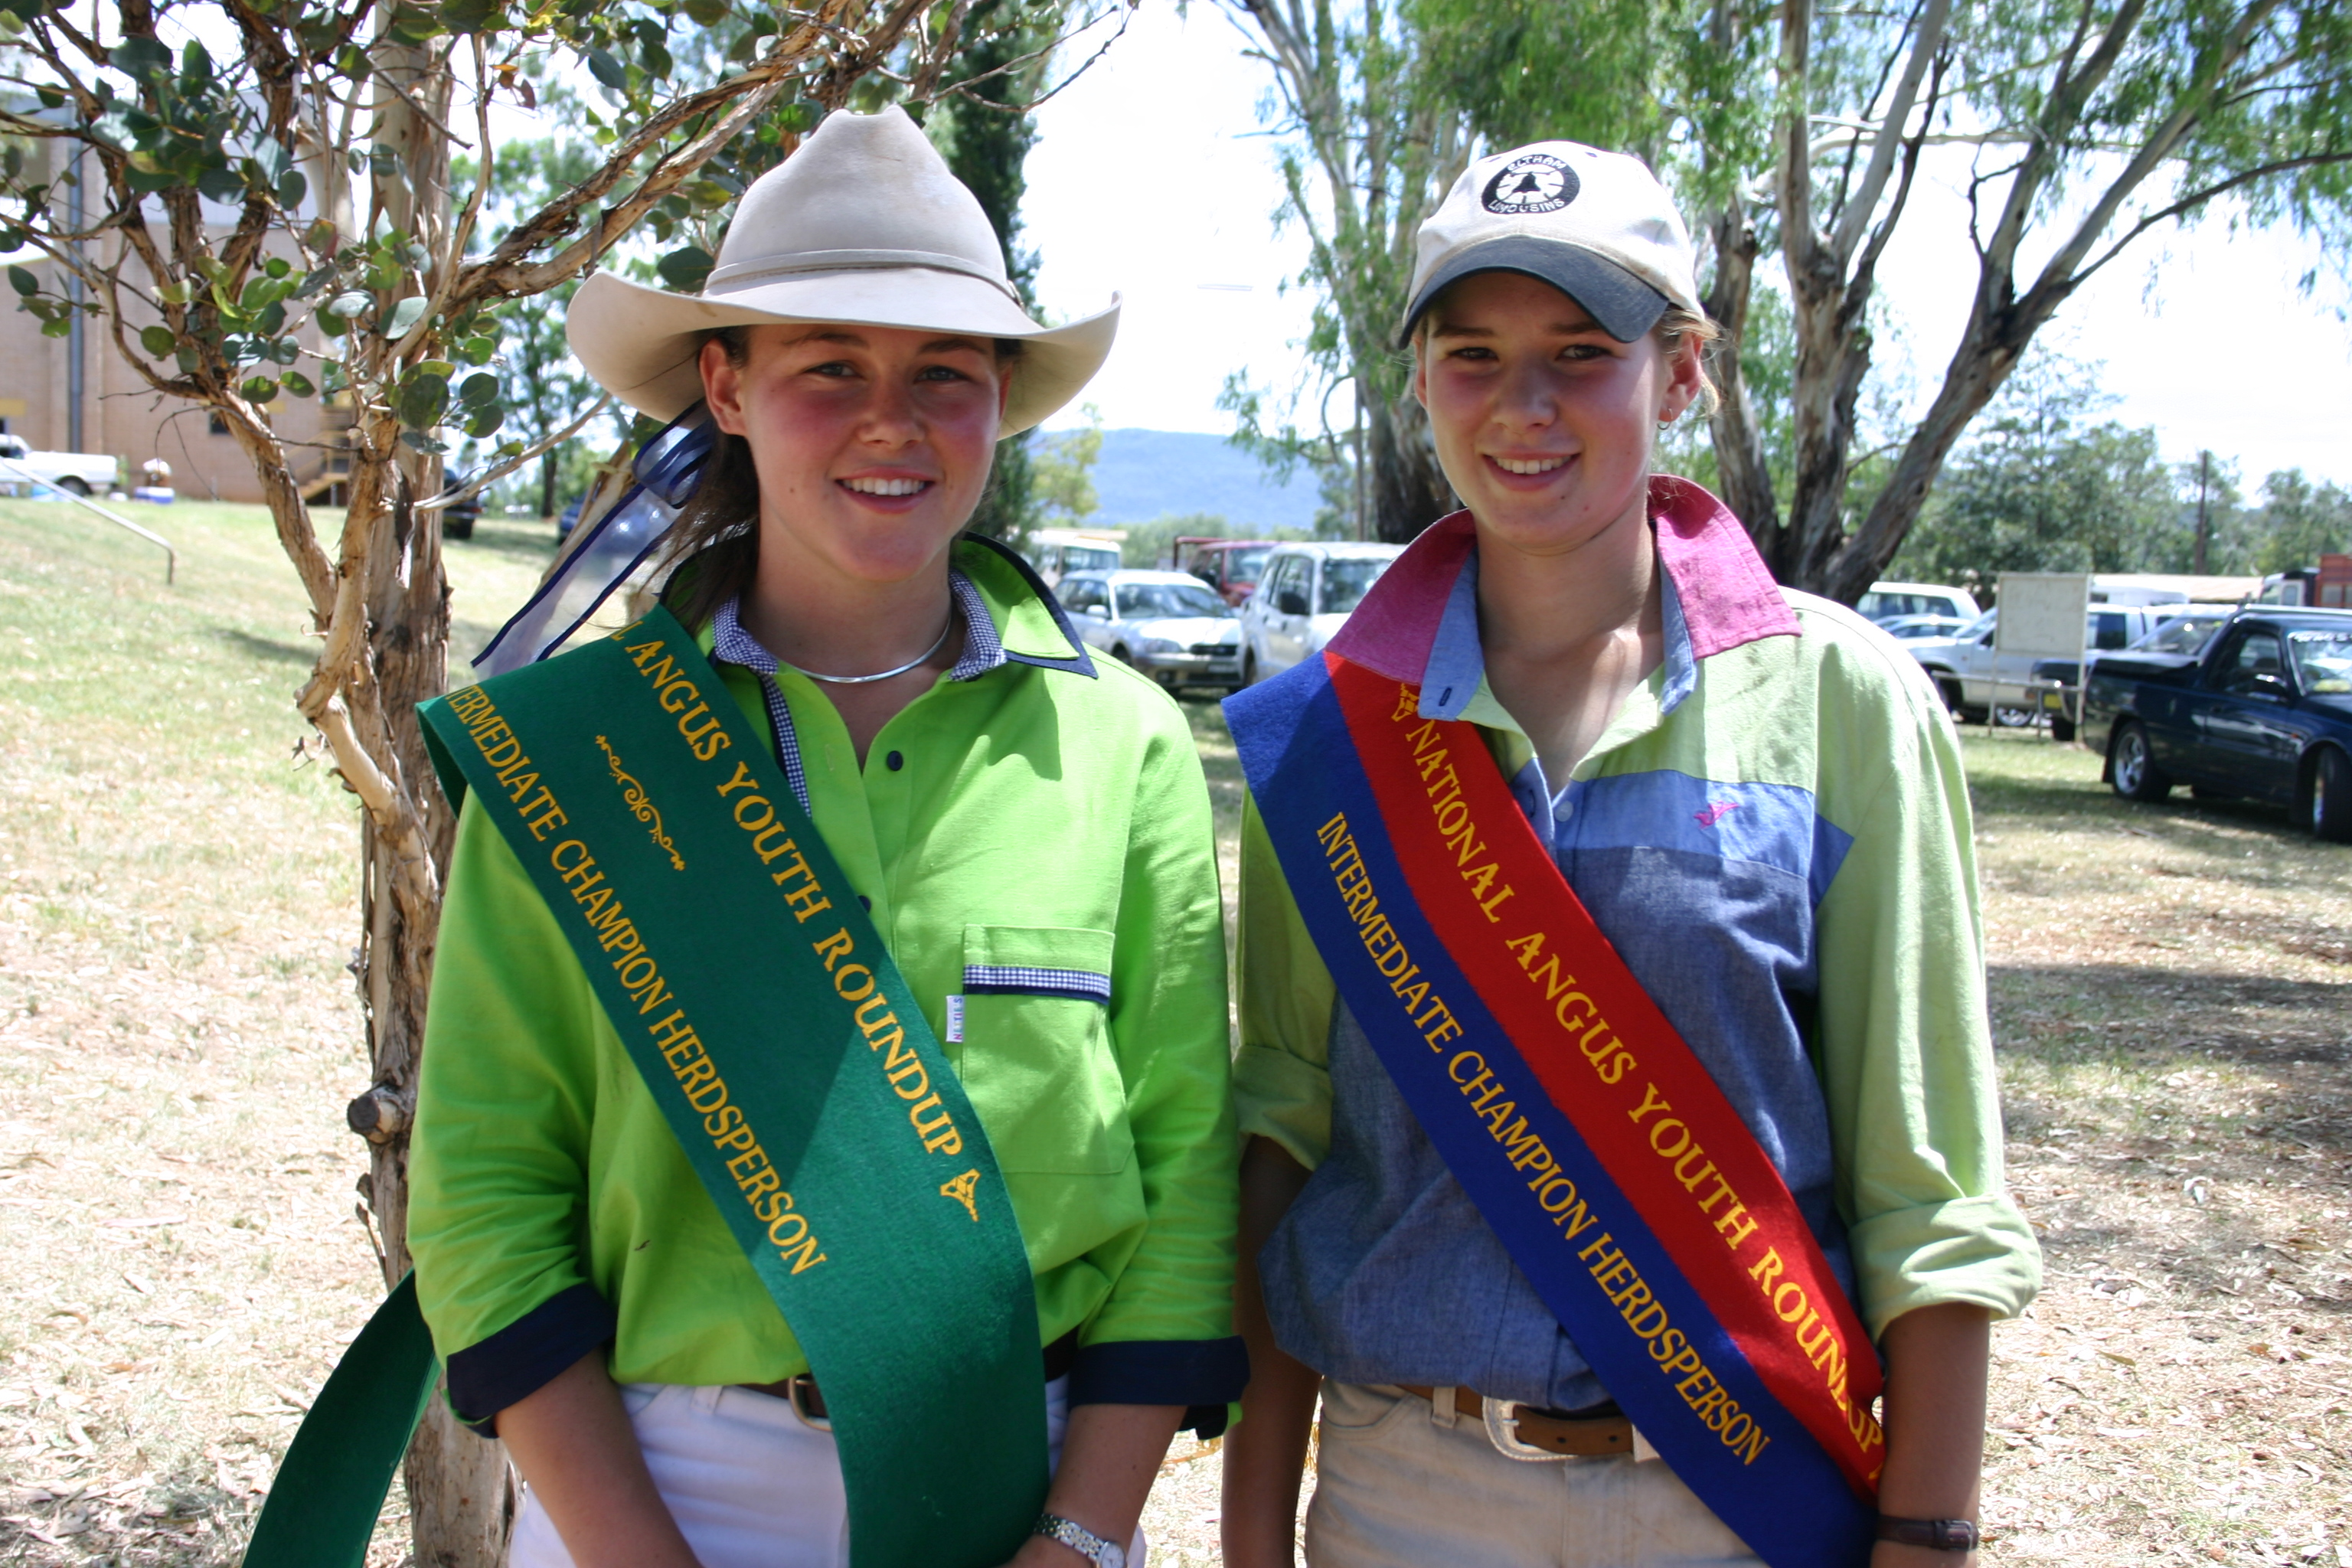 Jasmine Green (nee Nixon) (right) pictured at the 2005 Angus Youth National Roundup